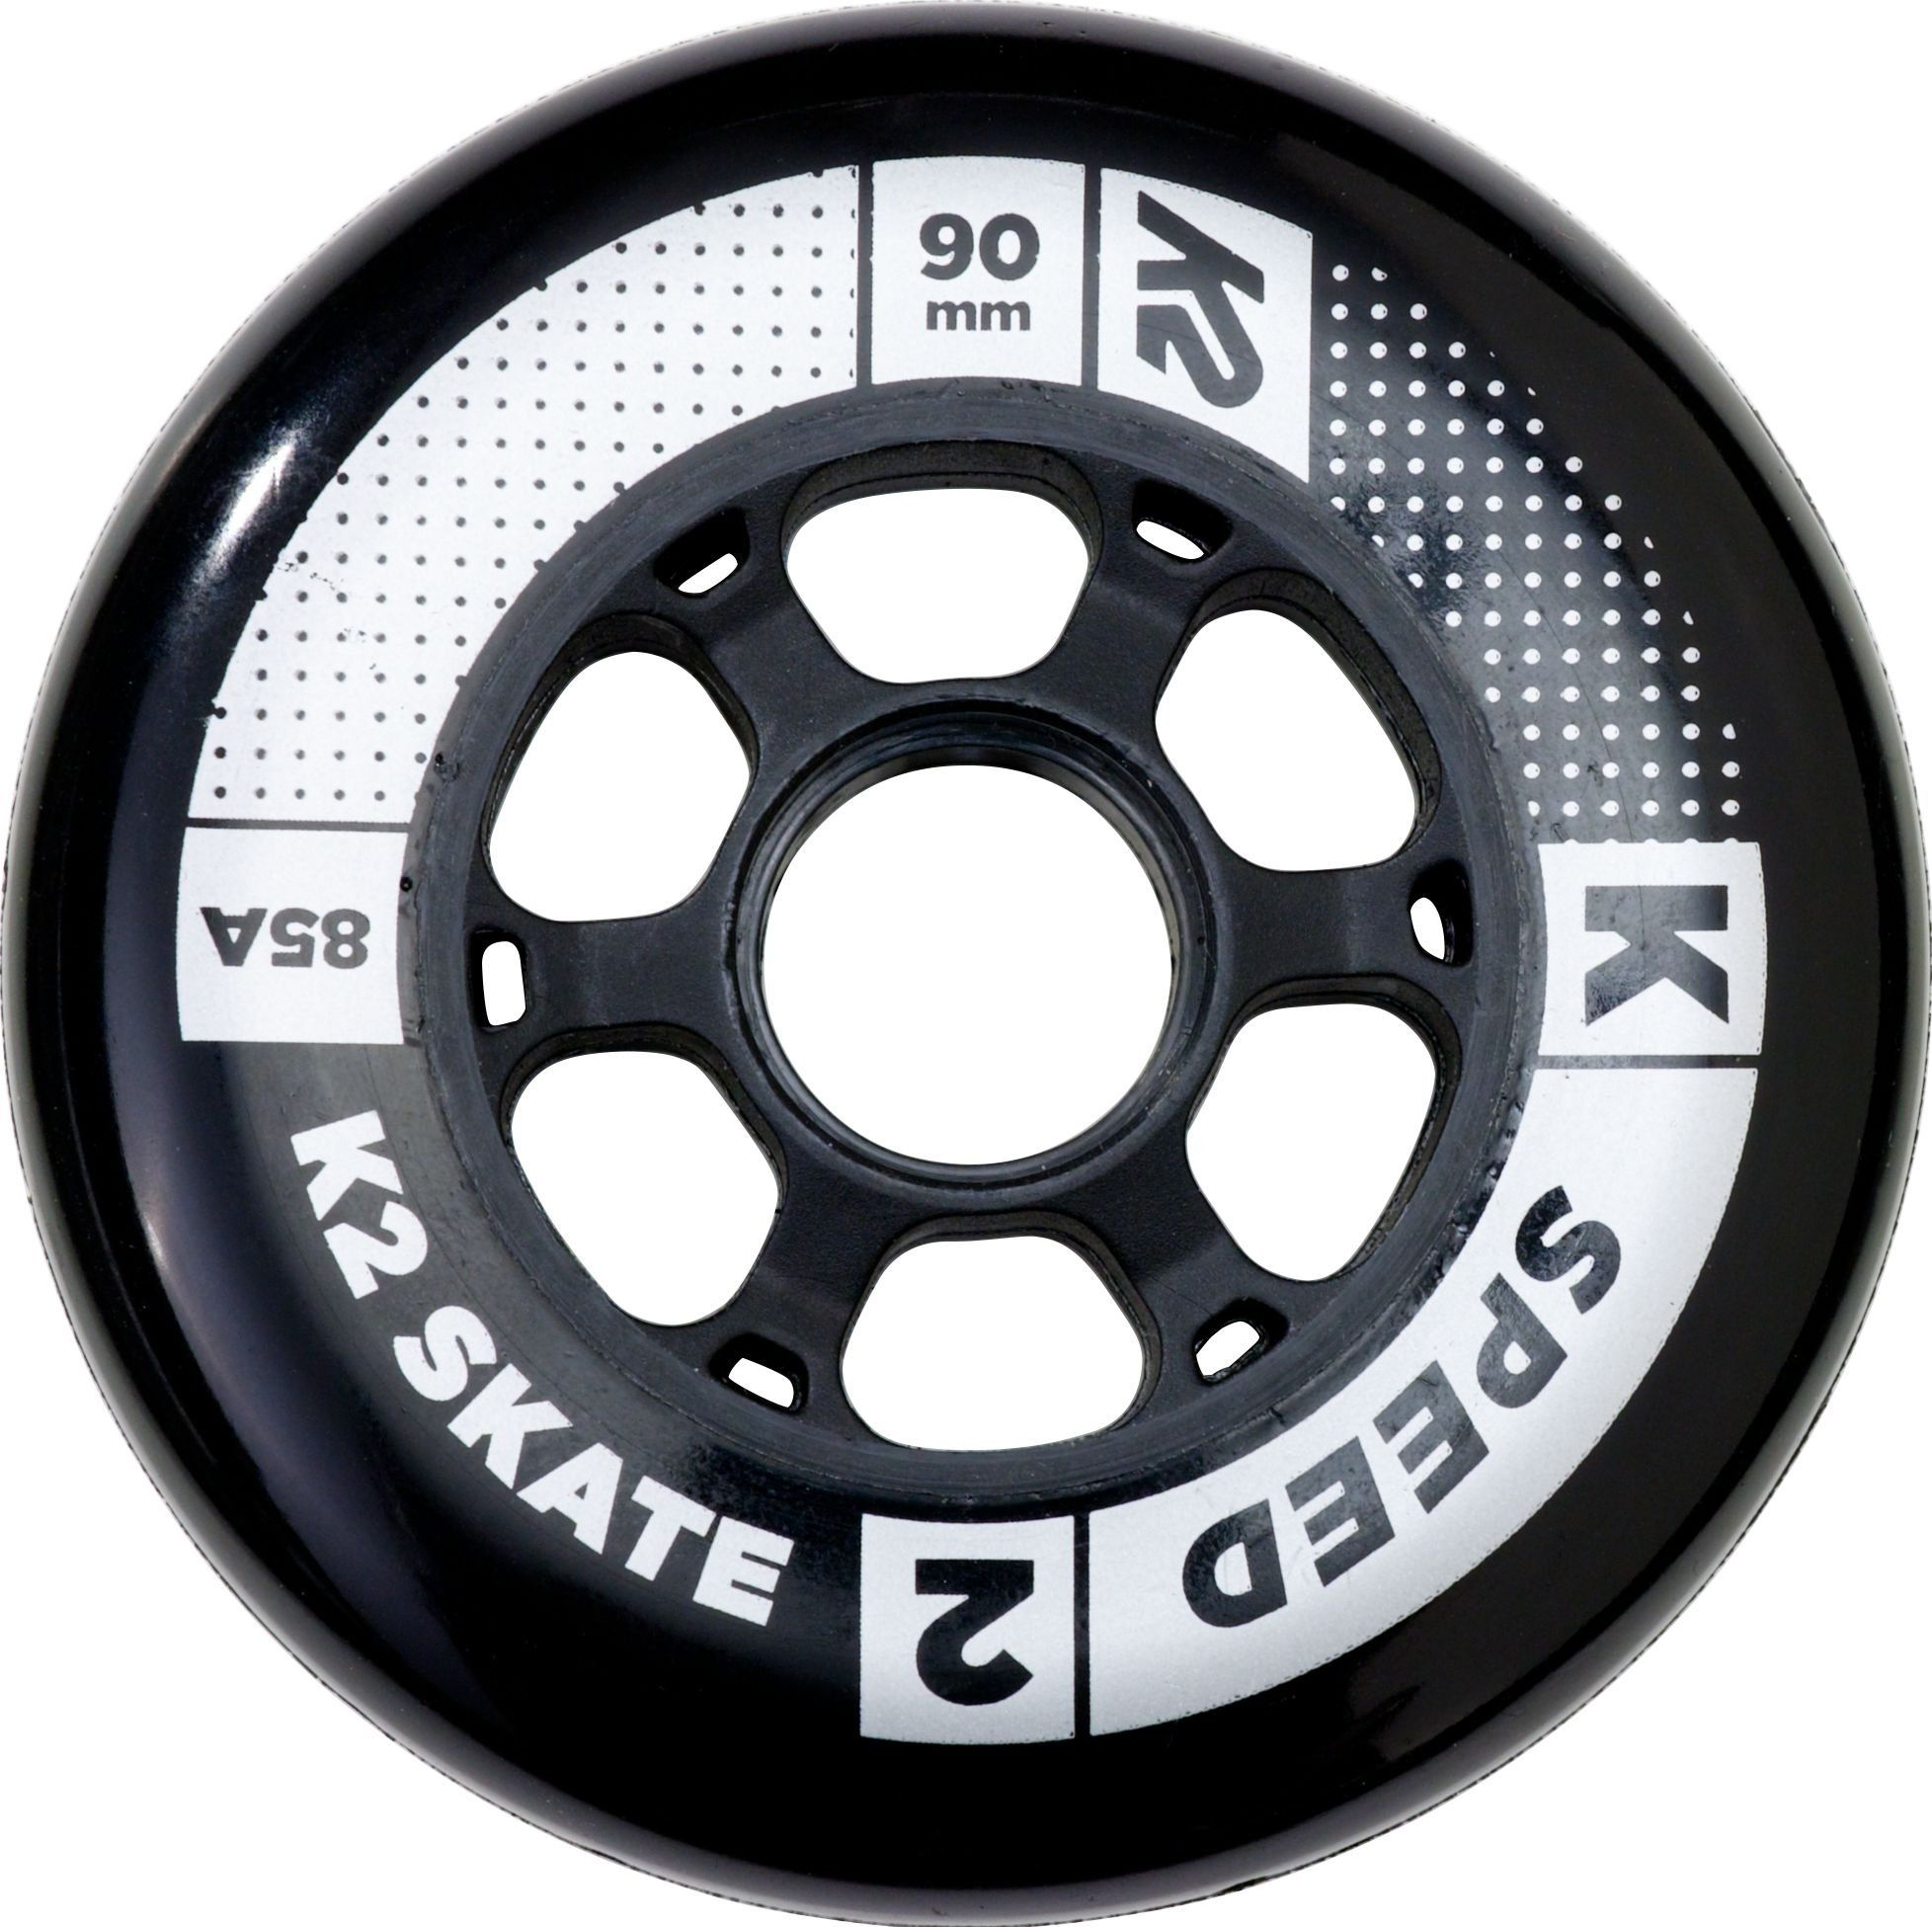 90mm, K2 Skate Speed 85A 8 Wheel Pack with ILQ 9 Bearing